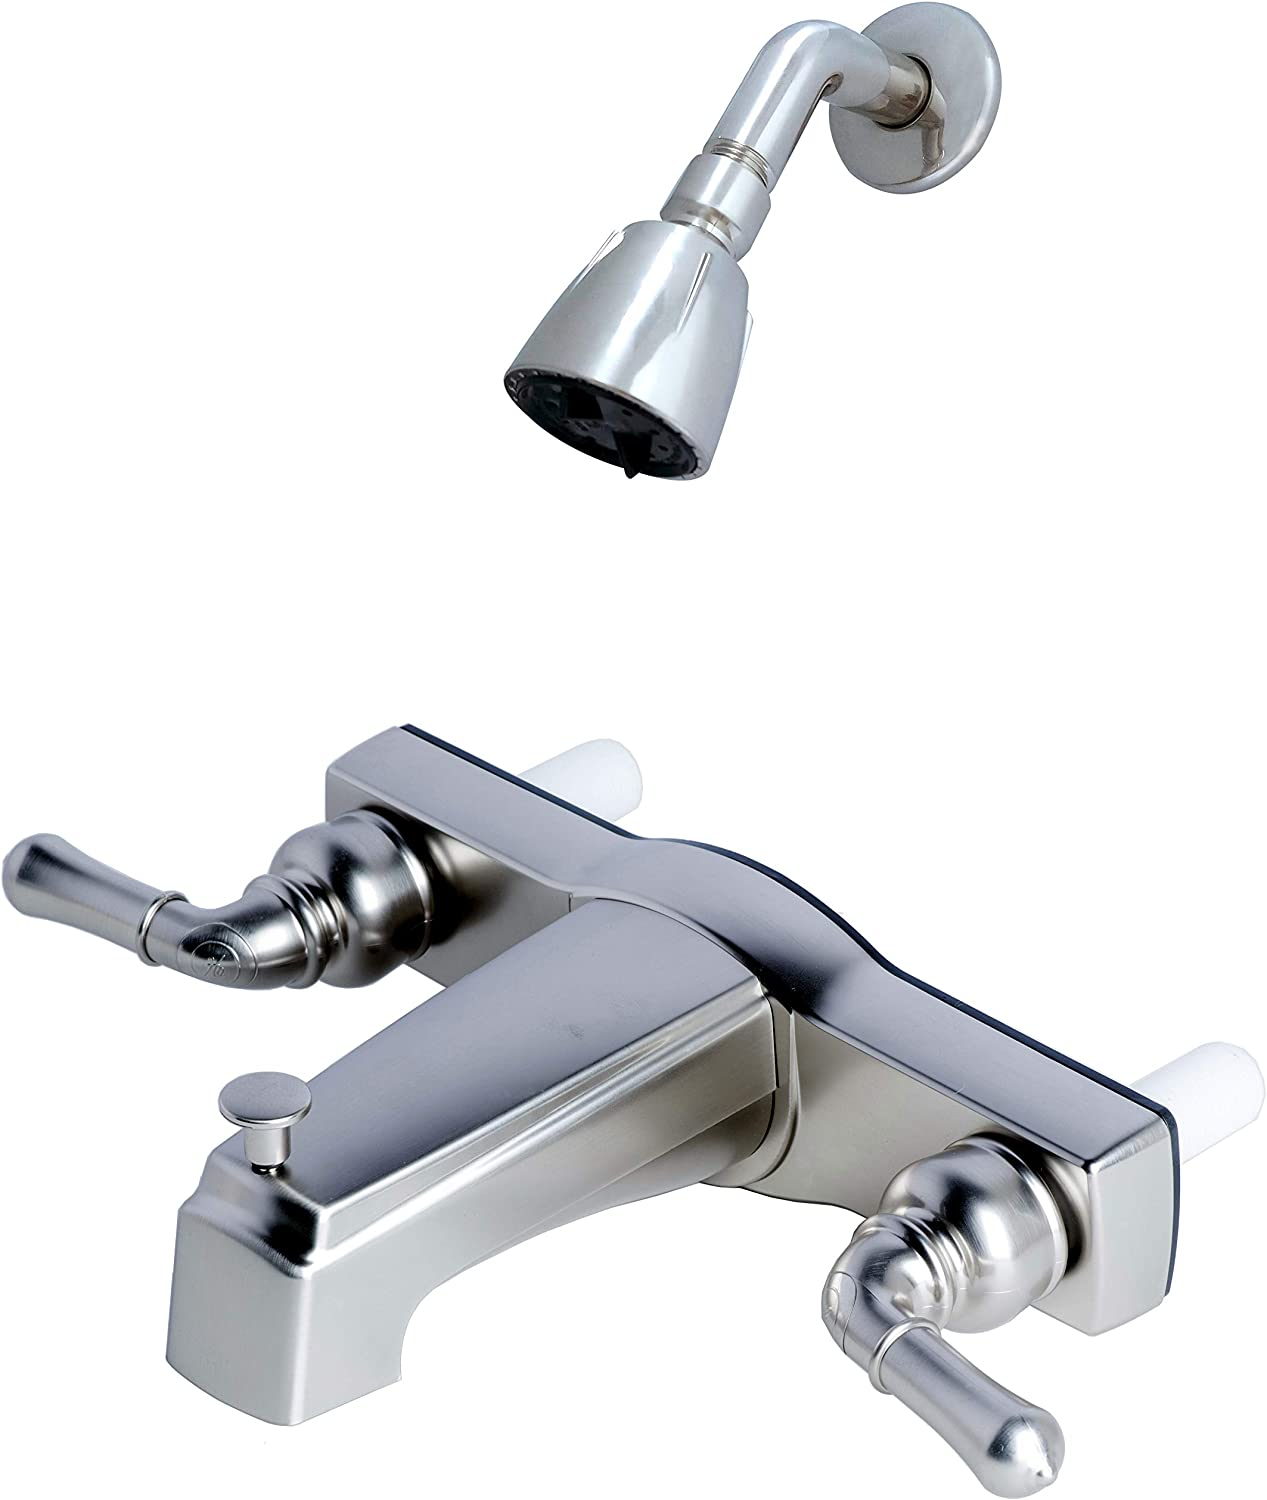 """Laguna Brass 3310BN/4010BN Mobile Home Two Handle Non-Metallic 8"""" Tub Diverter with Shower Head/Arm/Flange, Brushed Nickel Finish"""